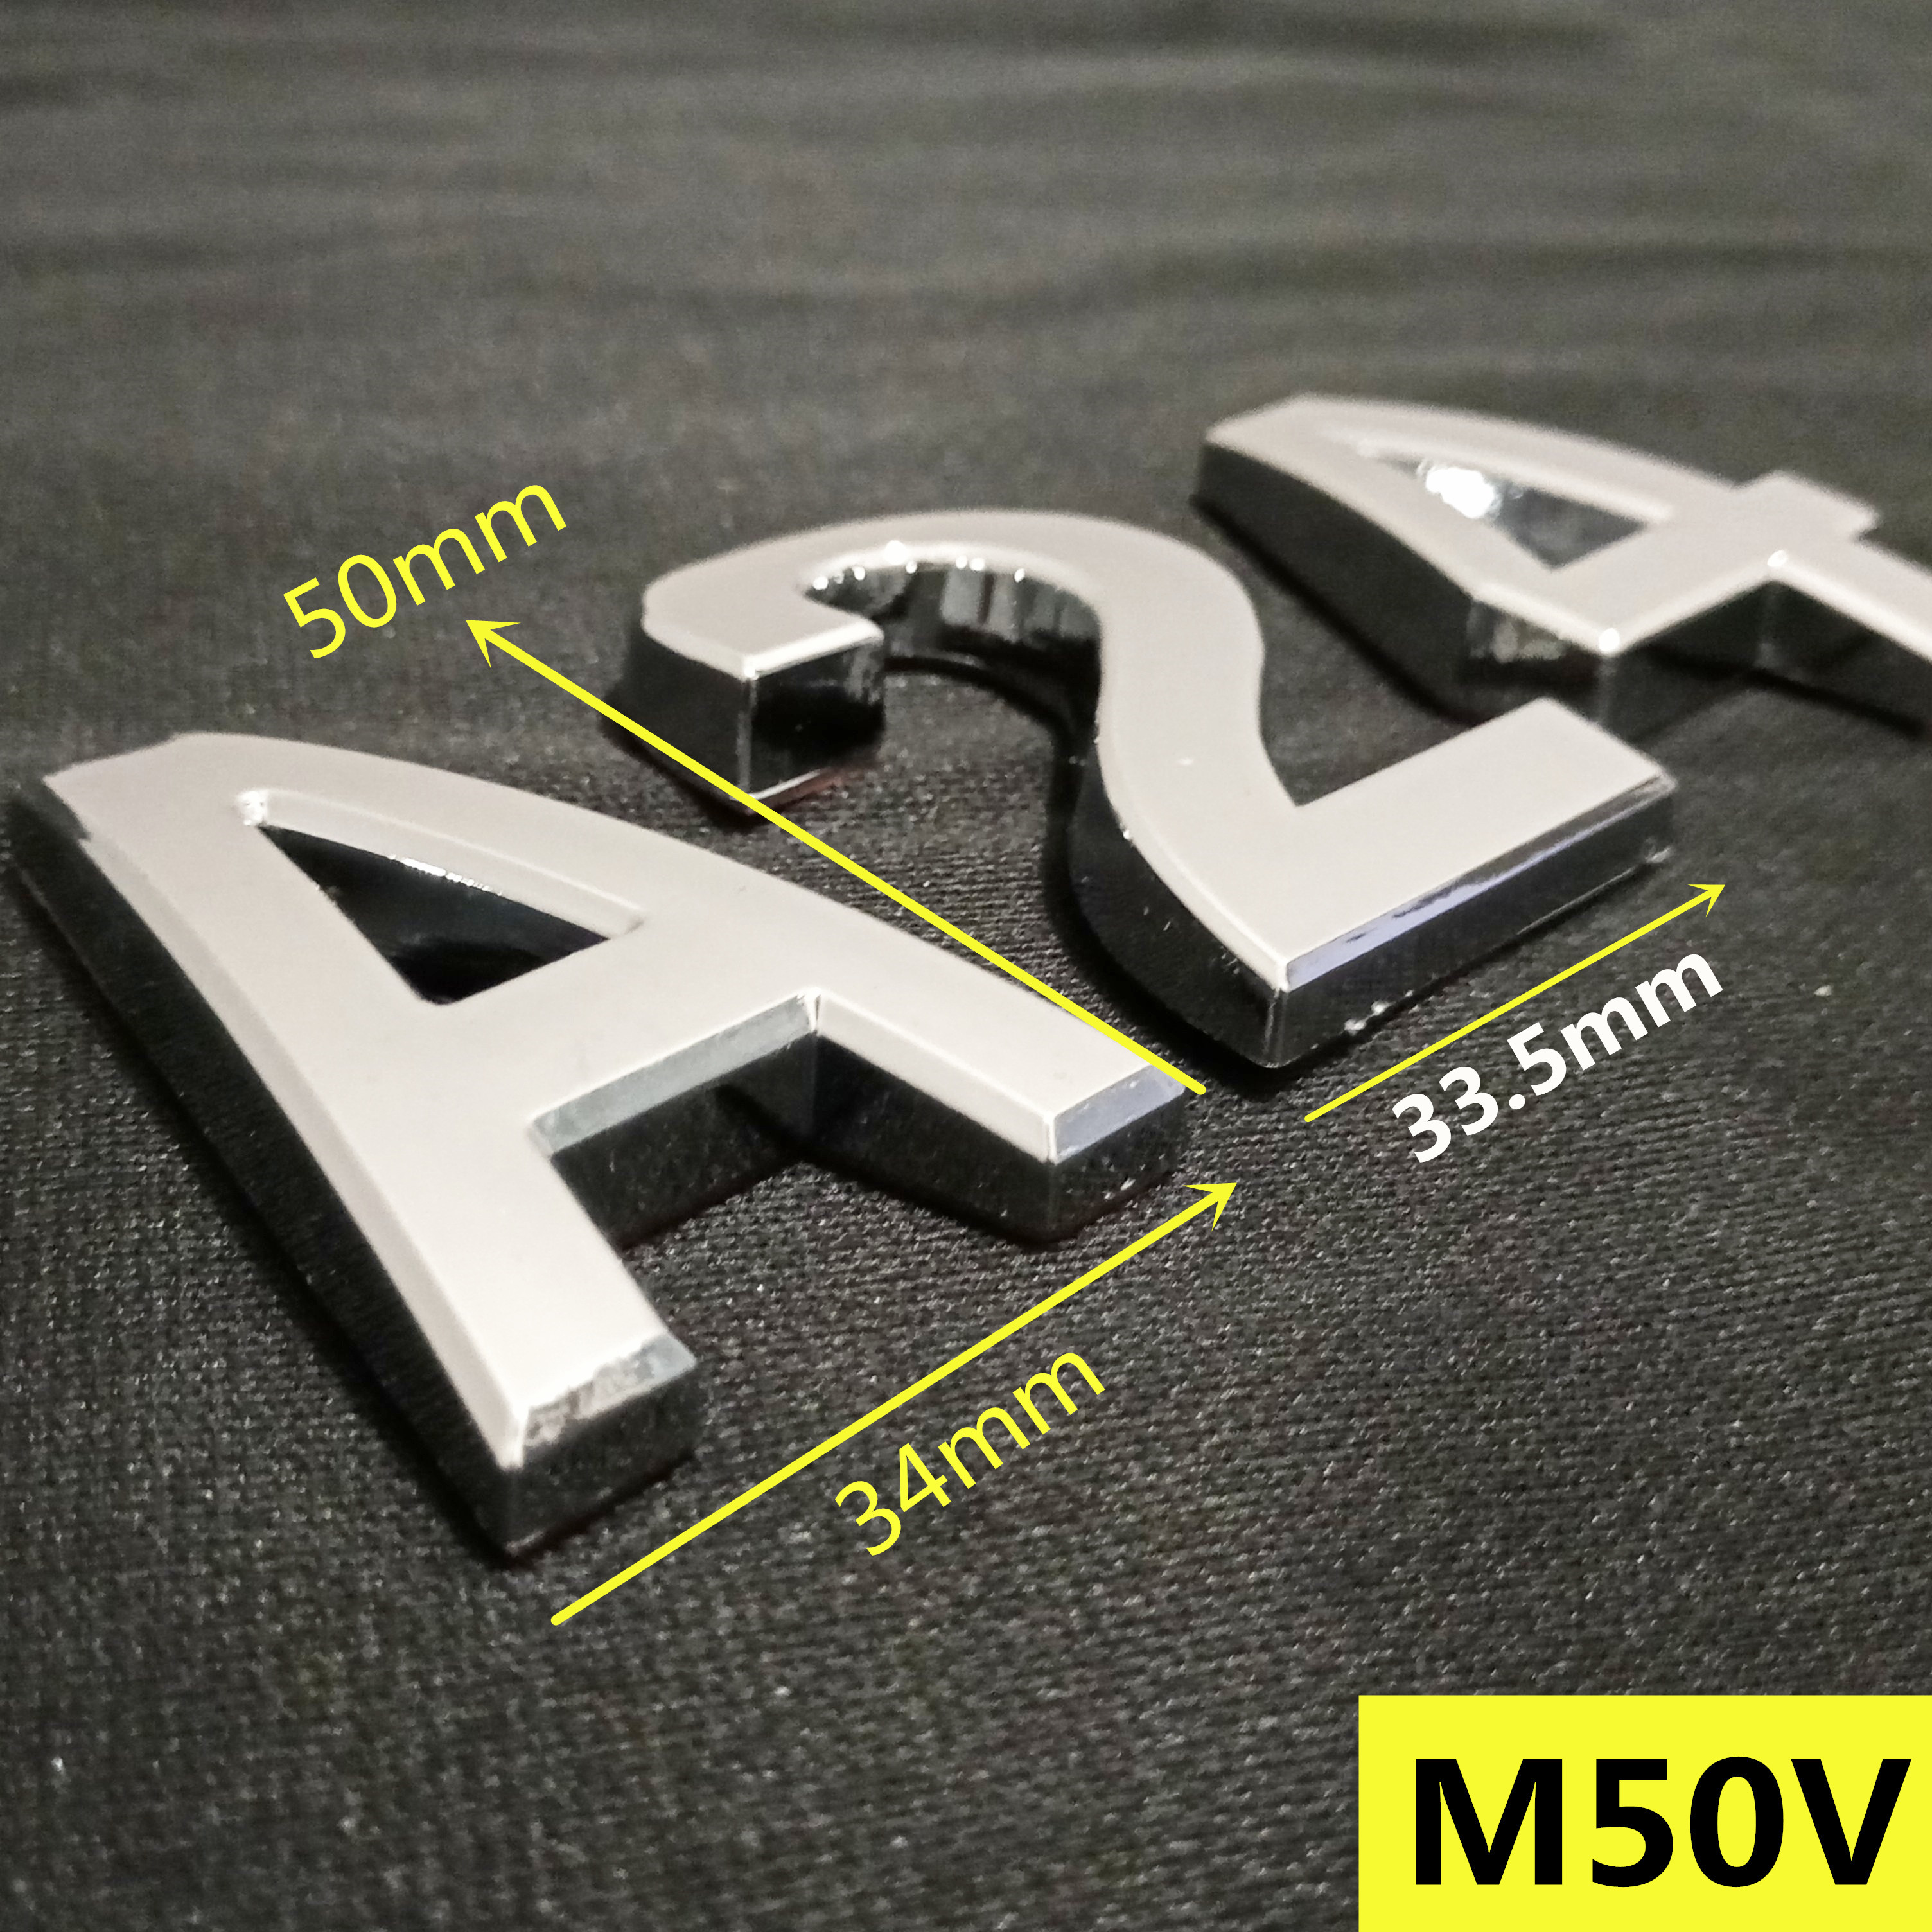 5cm/7cm 0123456789 A to Z Modern Silver Plaque Number House Hotel Door Number Address Digits Sticker Plate Sign ABS plastic(China)